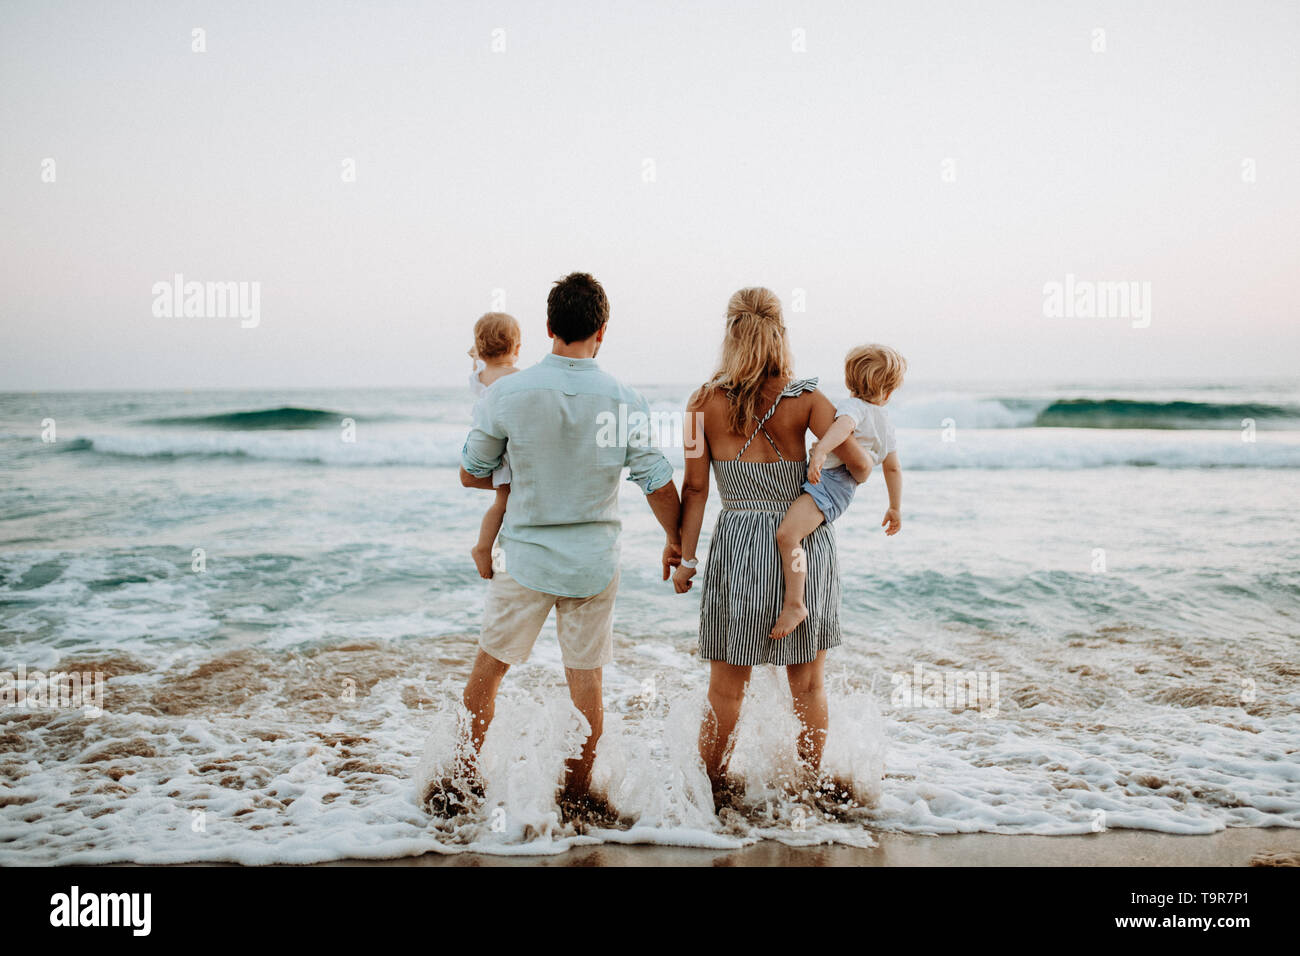 A rear view of family with two toddler children standing on beach on summer holiday. - Stock Image